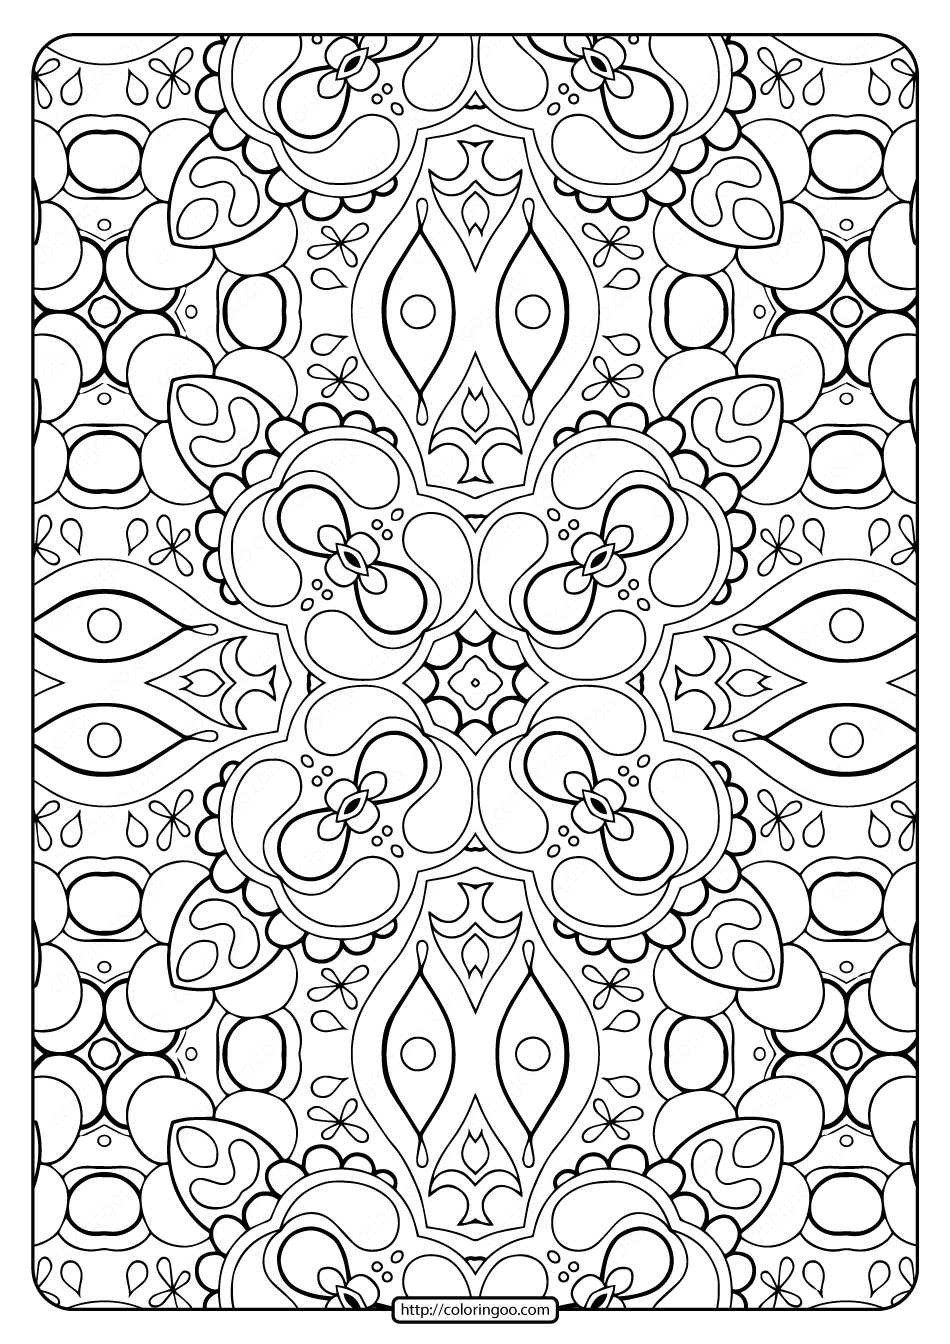 free design coloring pages printable abstract pattern adult coloring pages 01 free design pages coloring